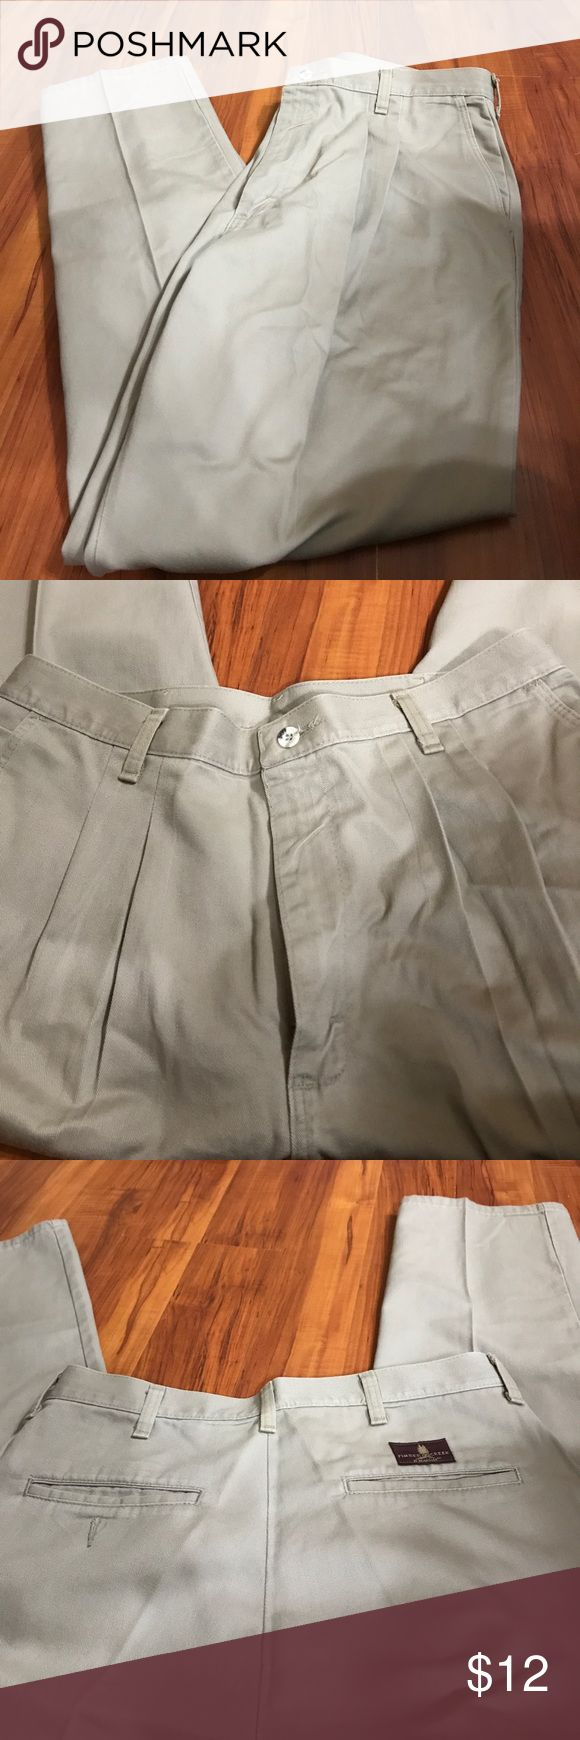 Timber Creek men's khaki pants Timber Creek men's khaki pants size 33/30 in good used condition. They are 100% cotton. Timber Creek Pants Chinos & Khakis